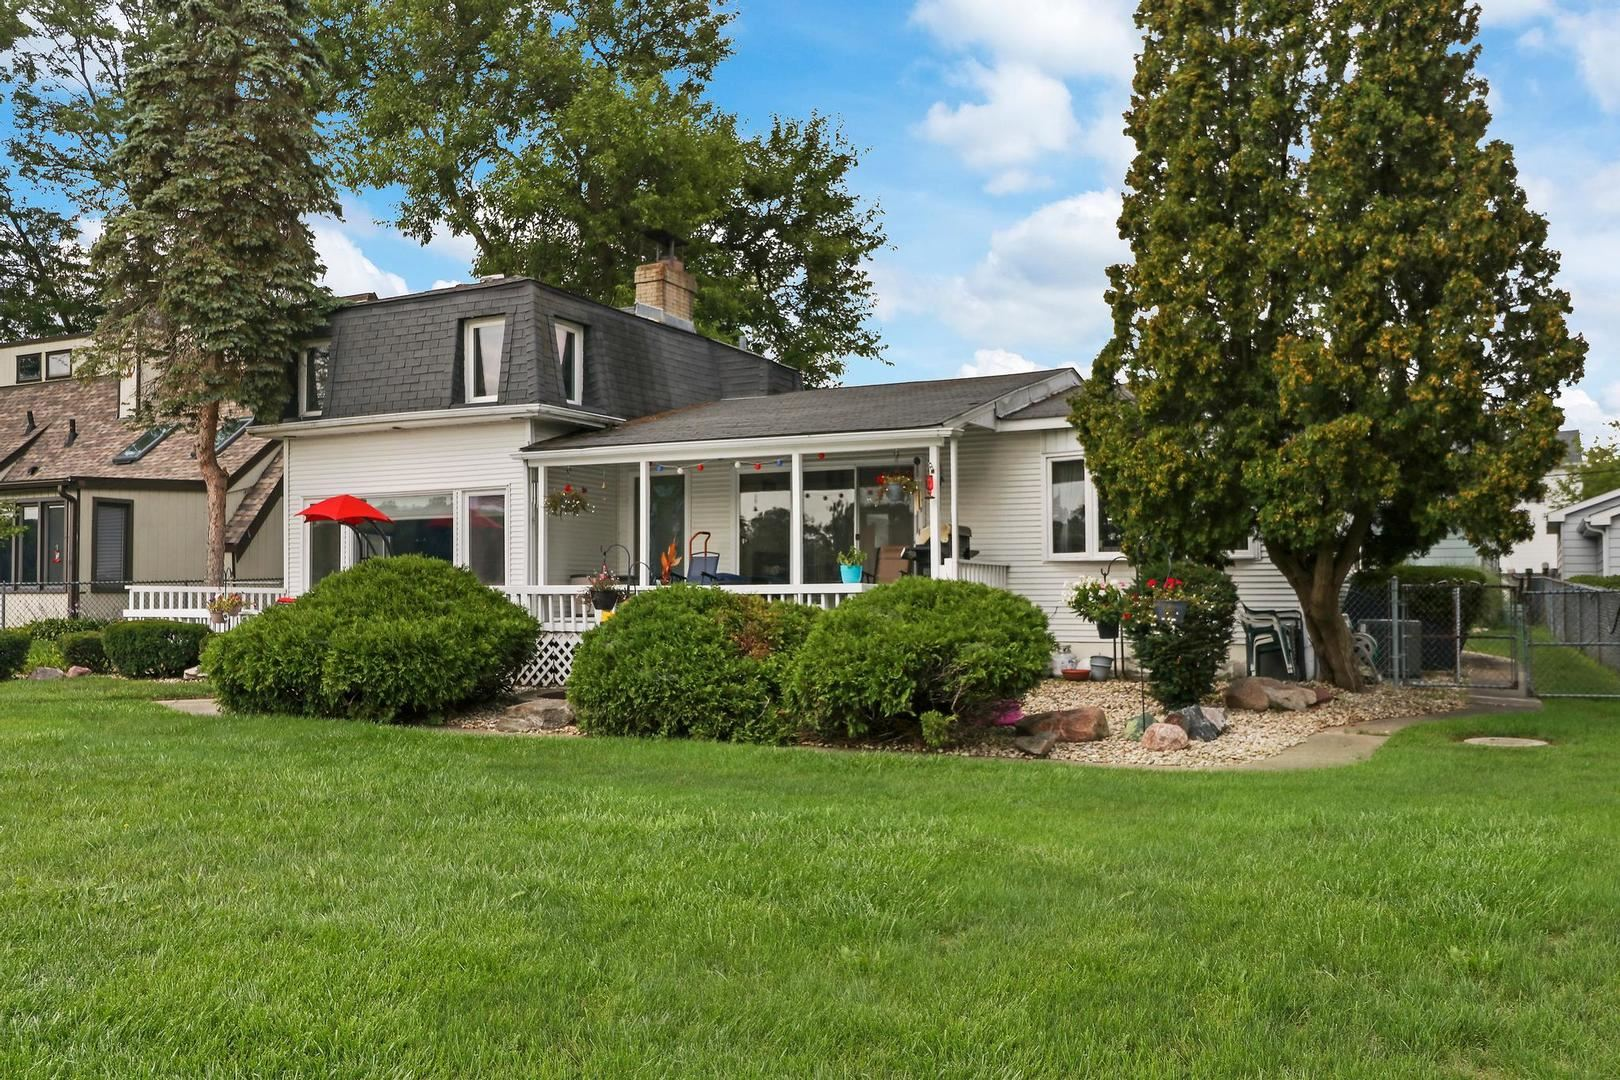 2012 Orchard Beach Road, McHenry, IL 60050 - #: 11195262